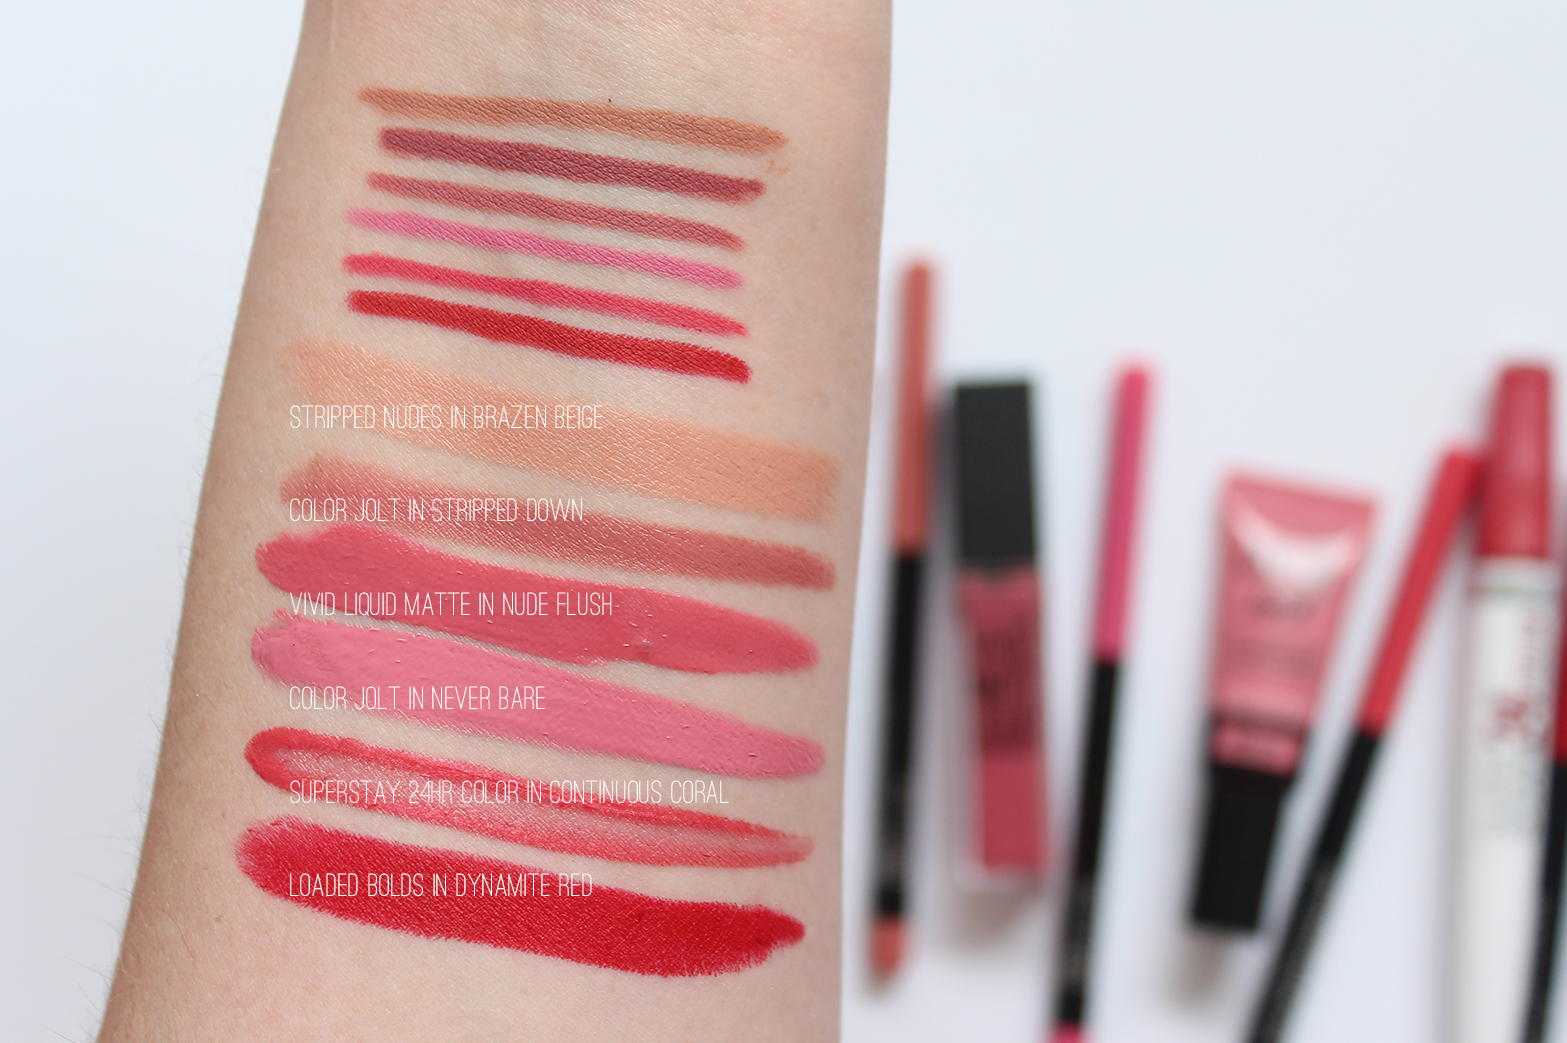 MAYBELLINE | Color Sensational Shaping Lip Liners - Review + Swatches - CassandraMyee